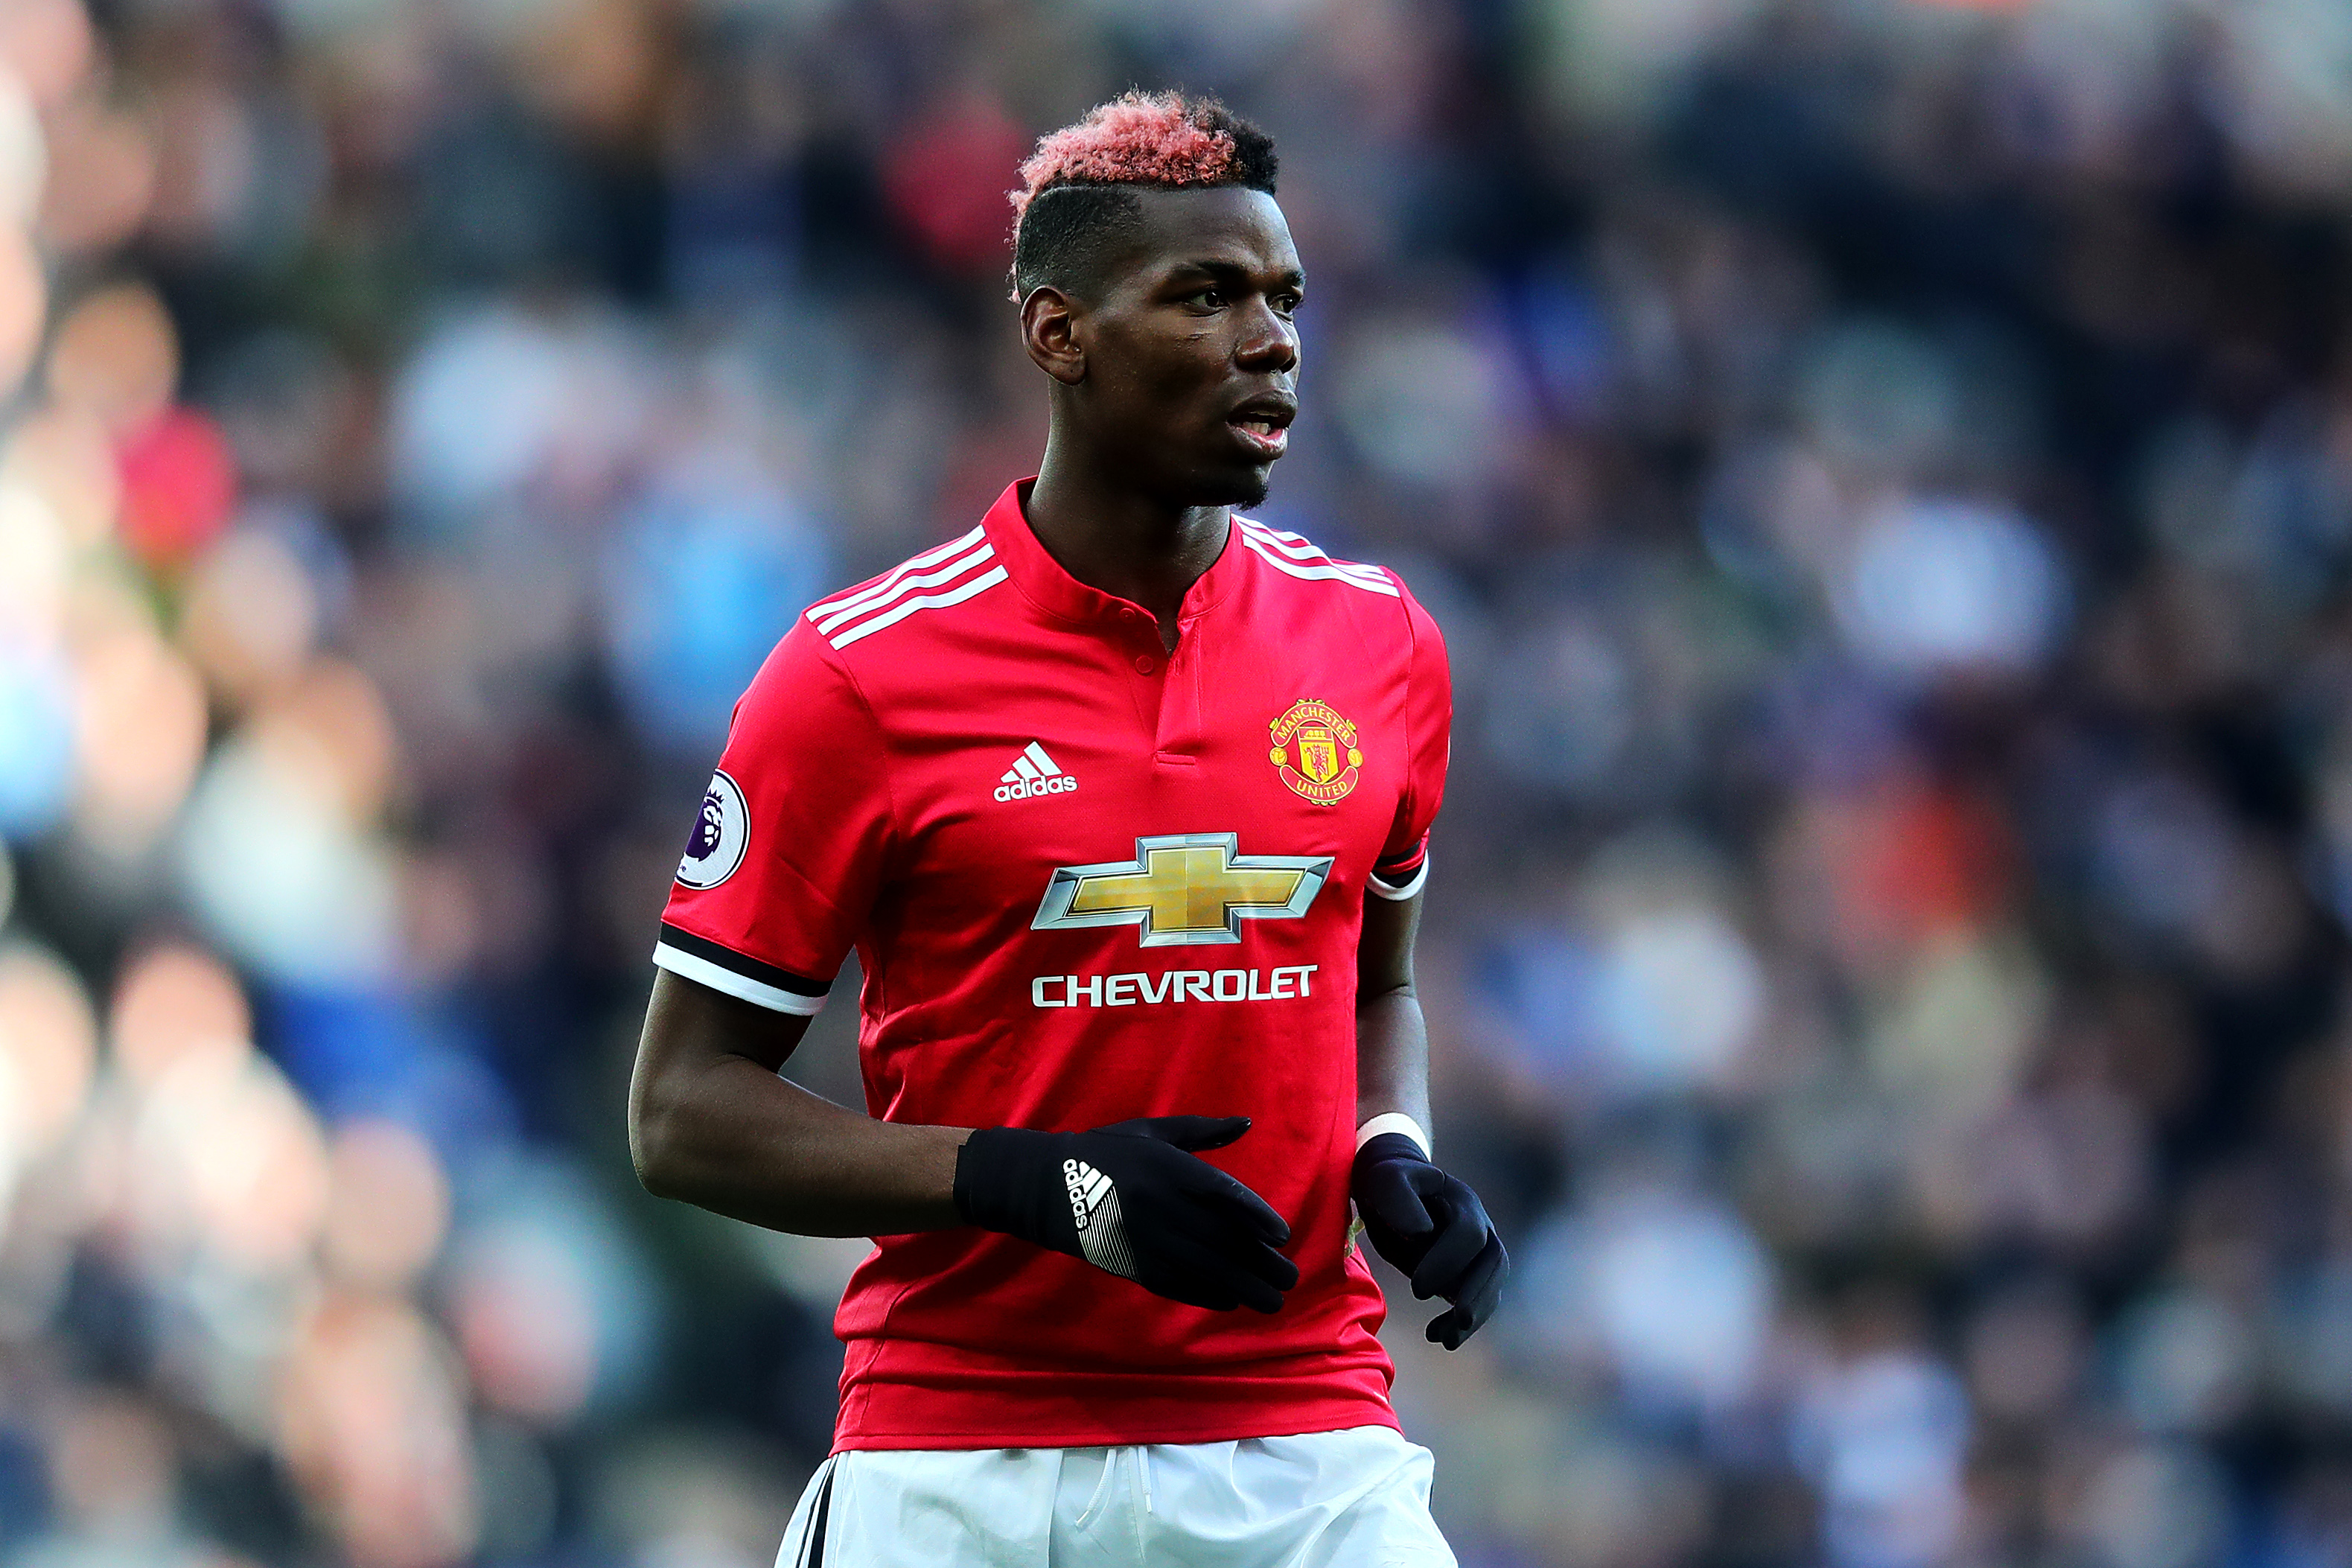 Paul Pogba to Real Madrid rumors are ridiculous